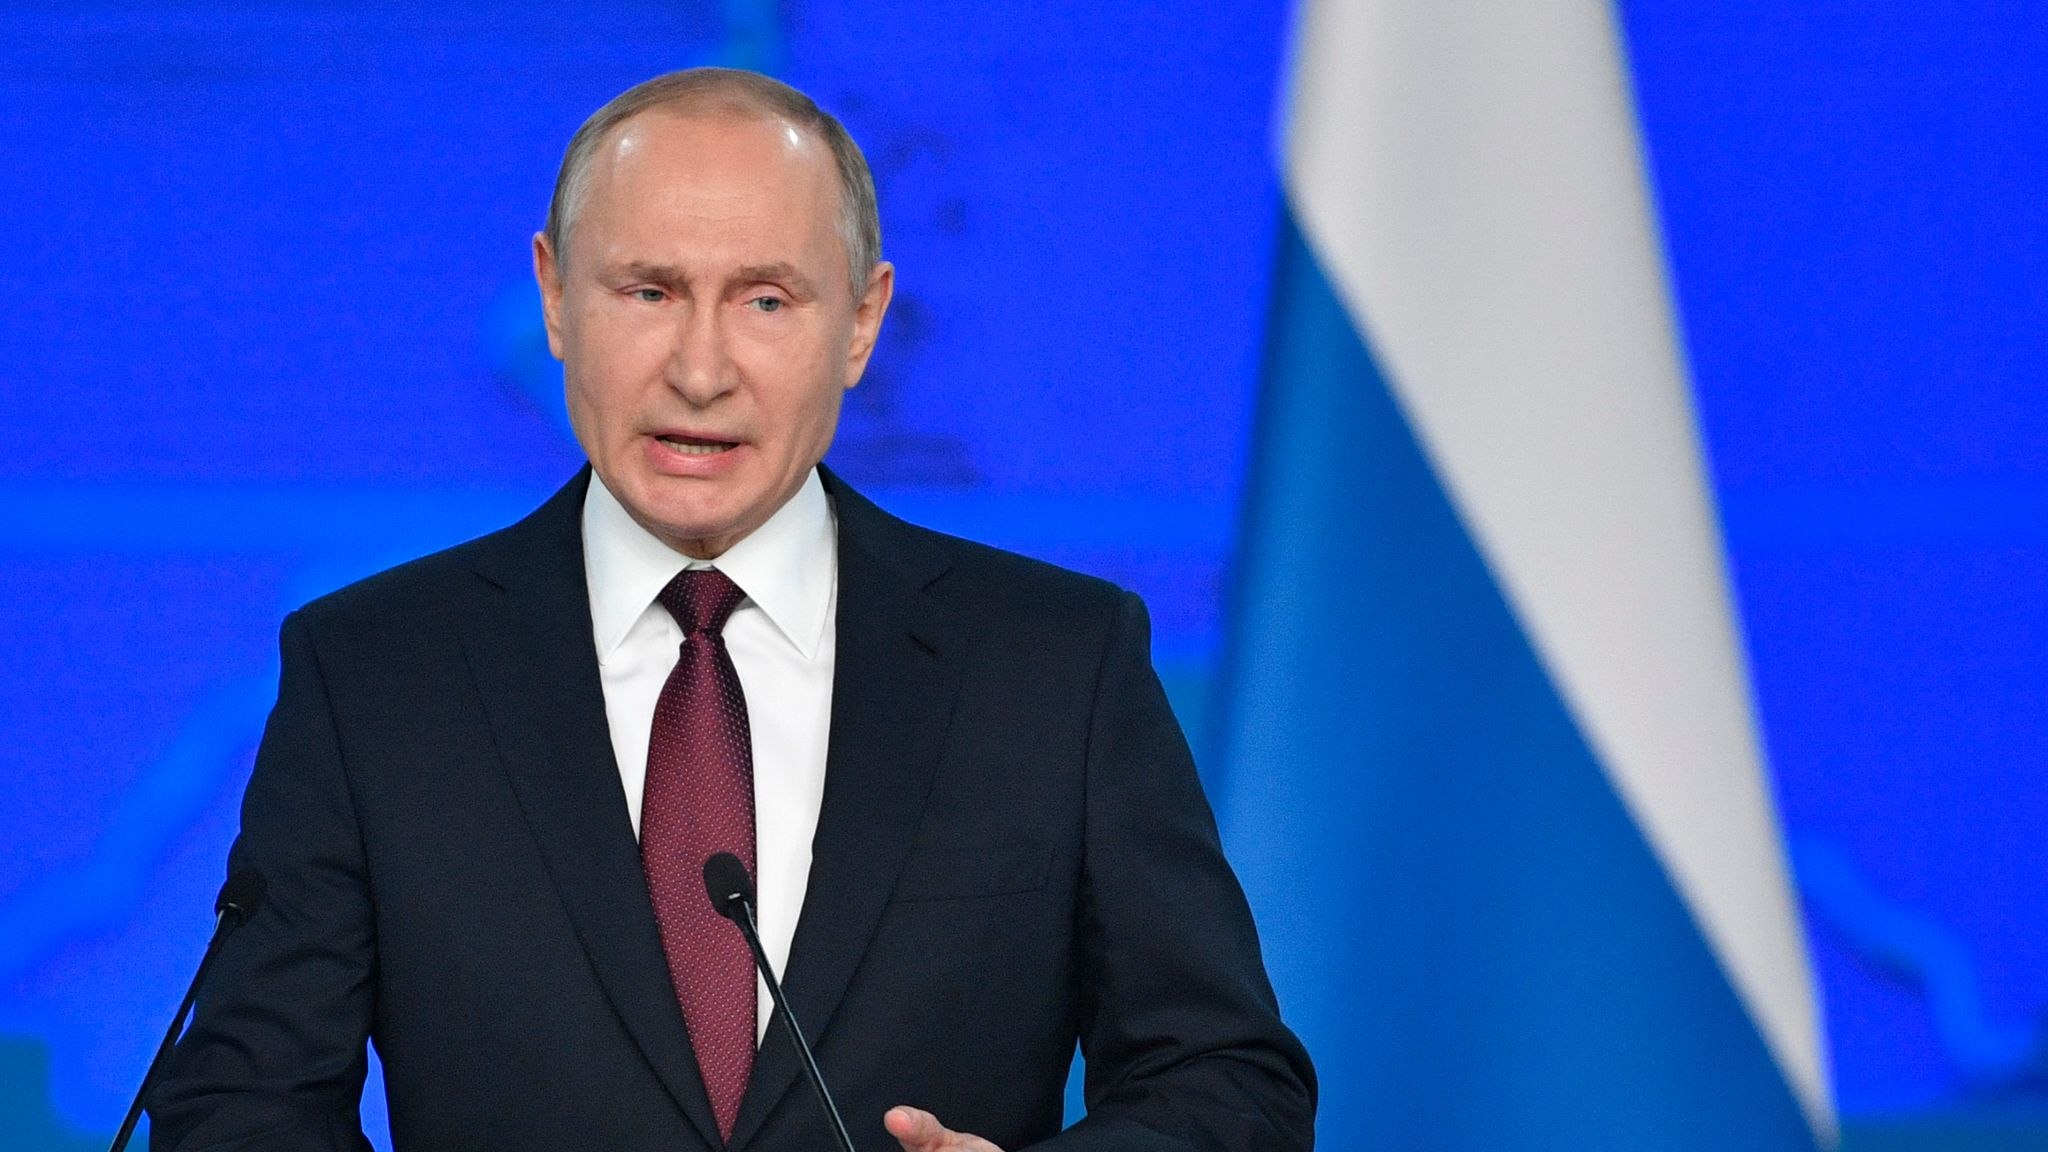 Vladimir Putin Warns Of Russian Retaliation If Us Places Missiles In Europe World News Sky News